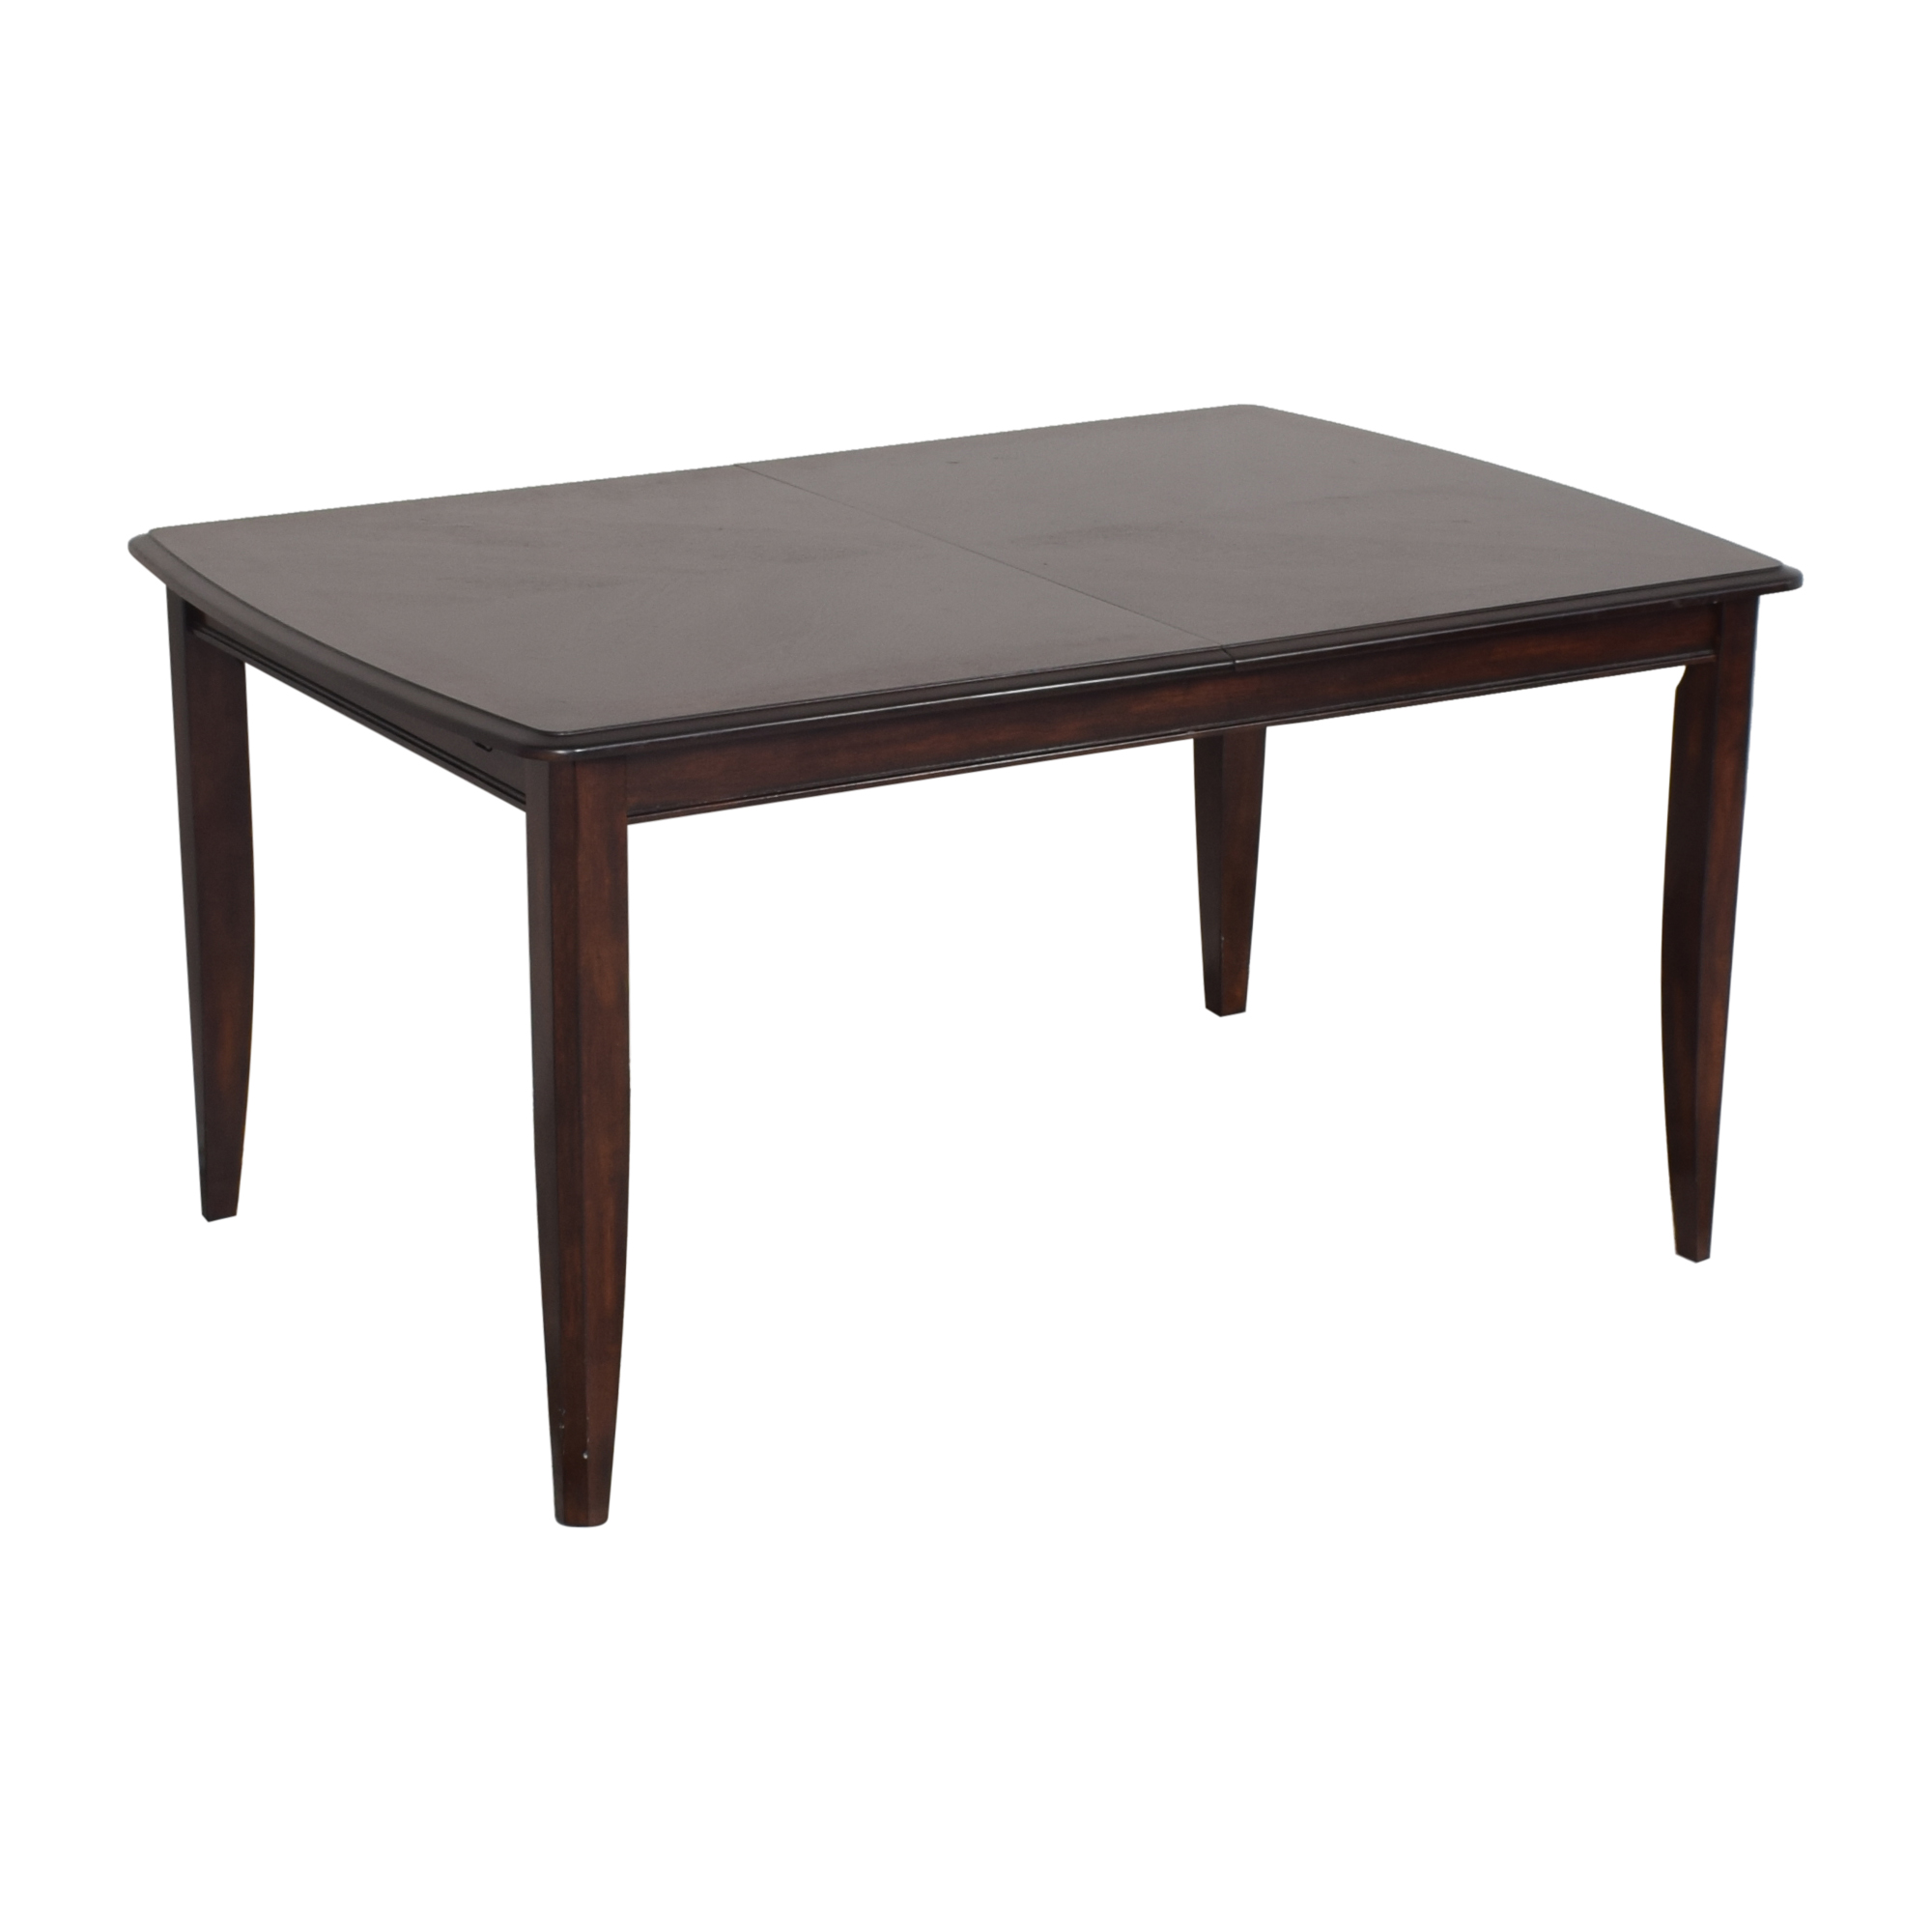 Raymour & Flanigan Raymour & Flanigan Extendable Dining Table Tables